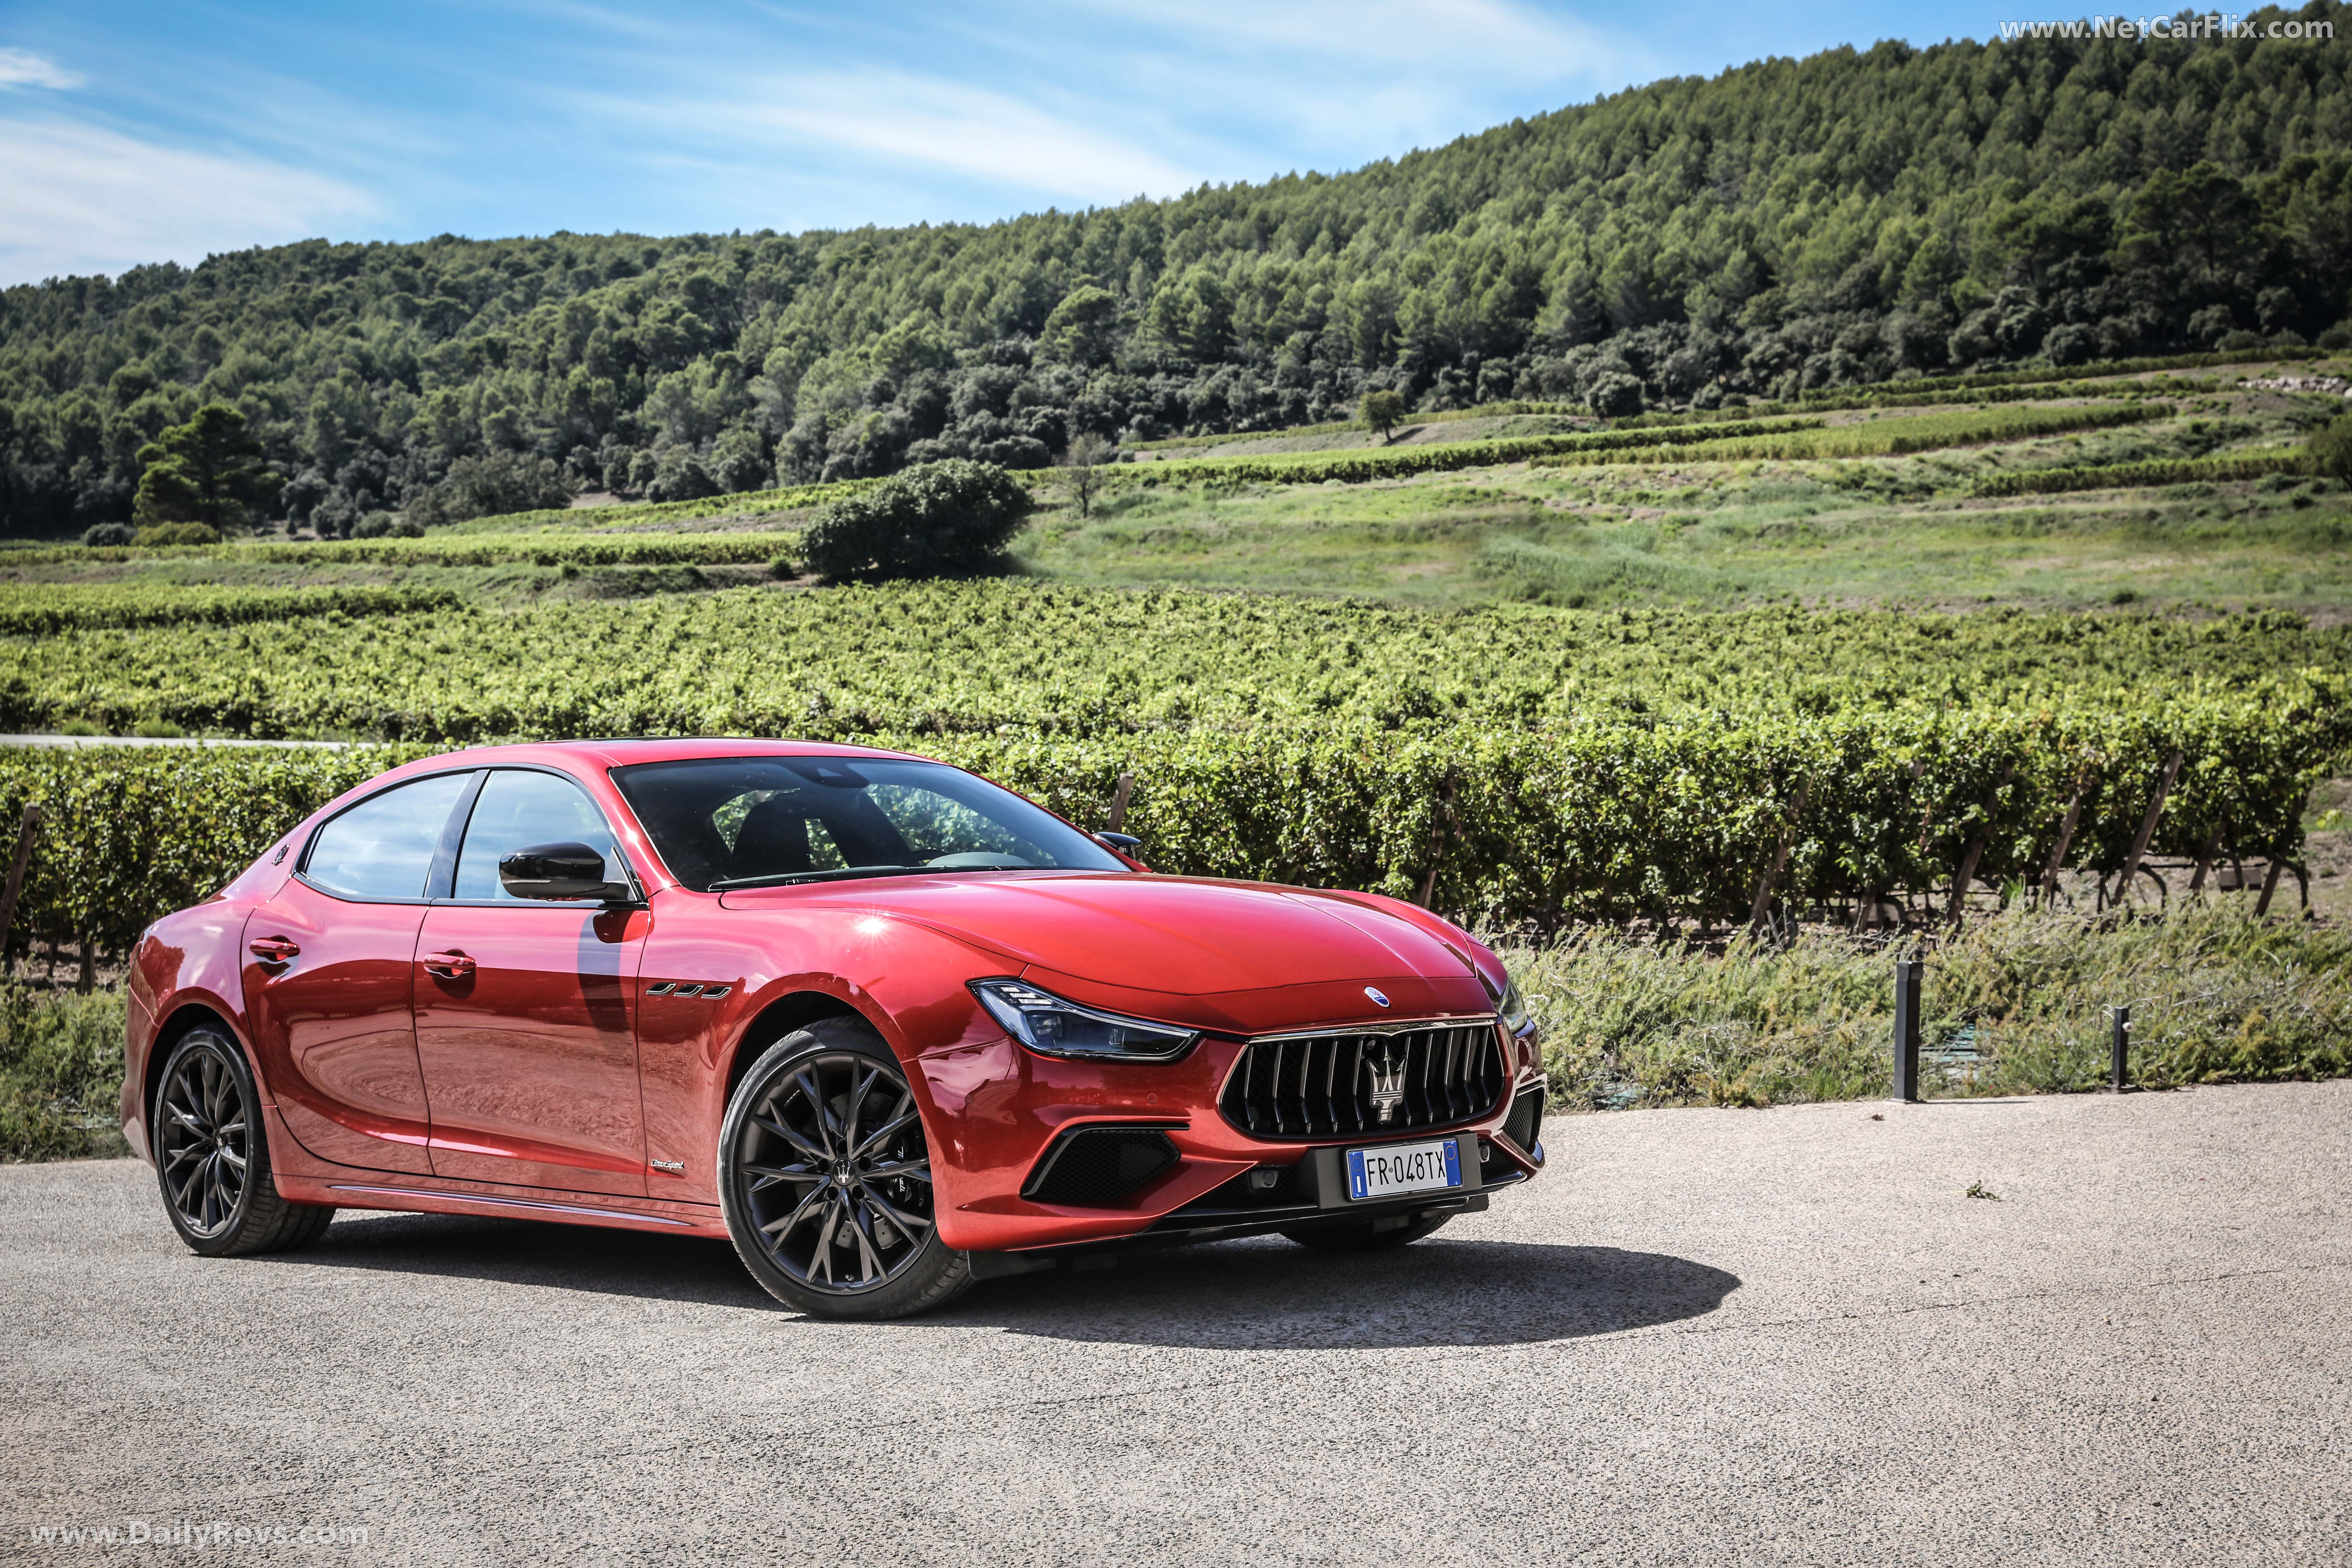 2019 Maserati Ghibli - HD Pictures,Specs,information and videos - Dailyrevs